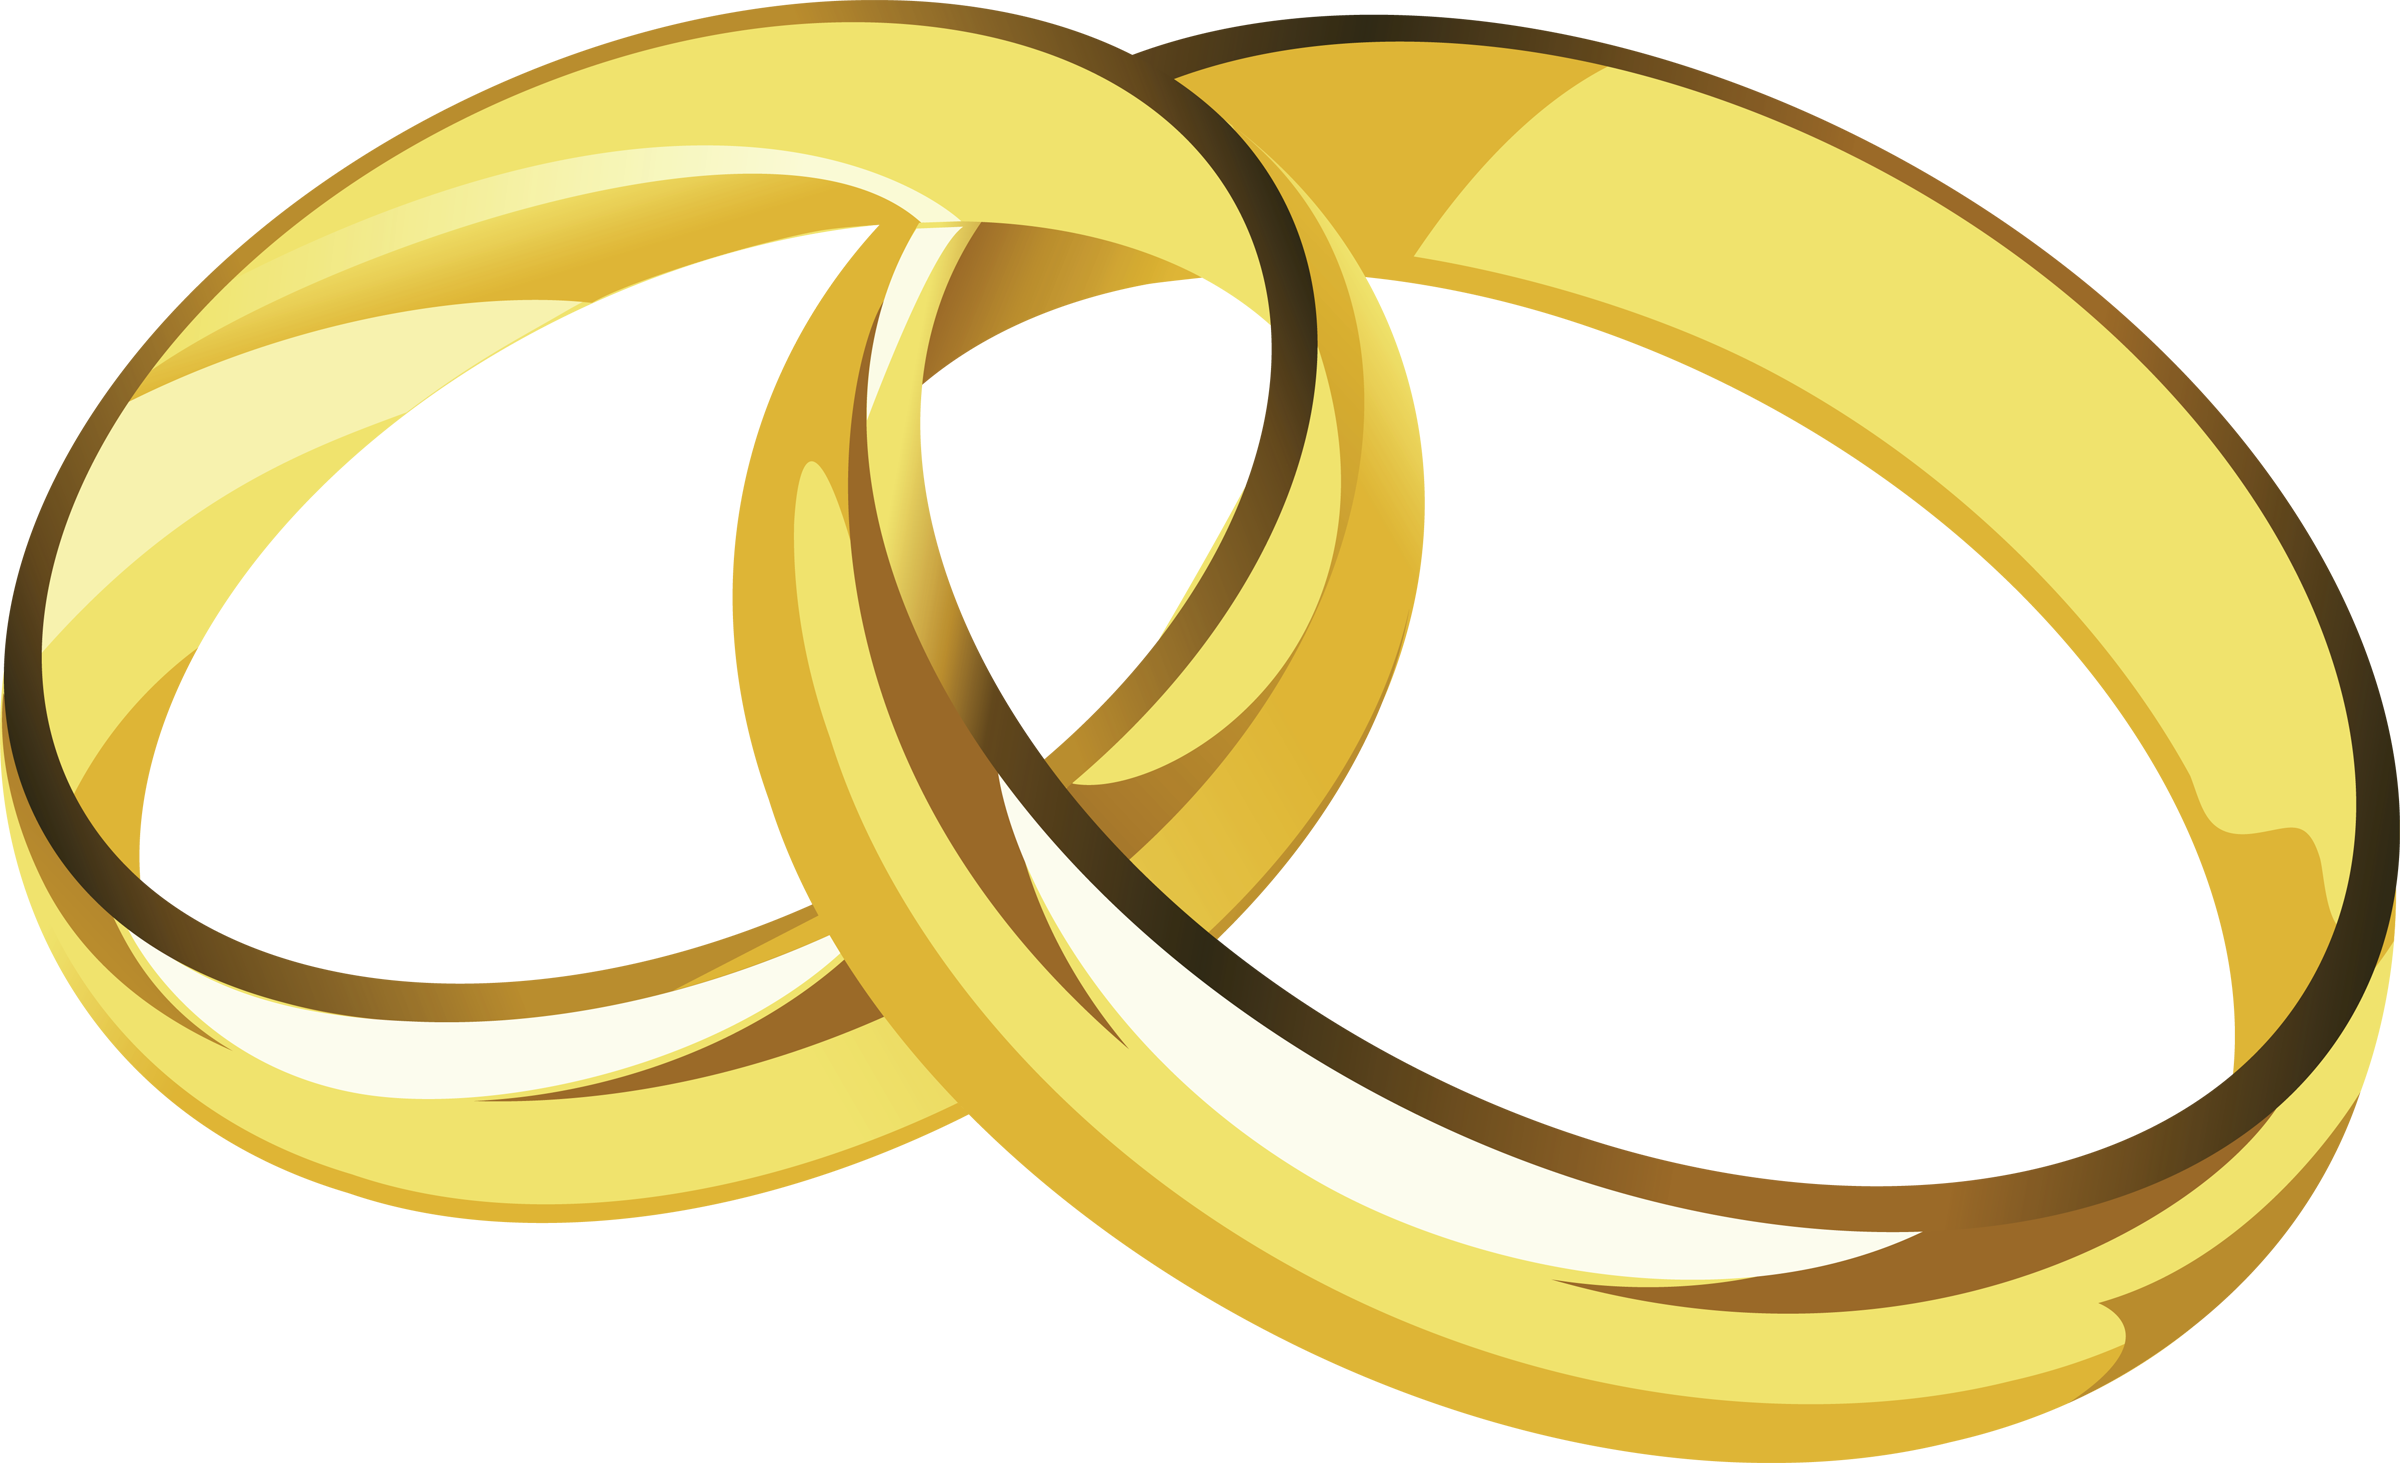 Wedding ring clip art pictures free clipart images 2.